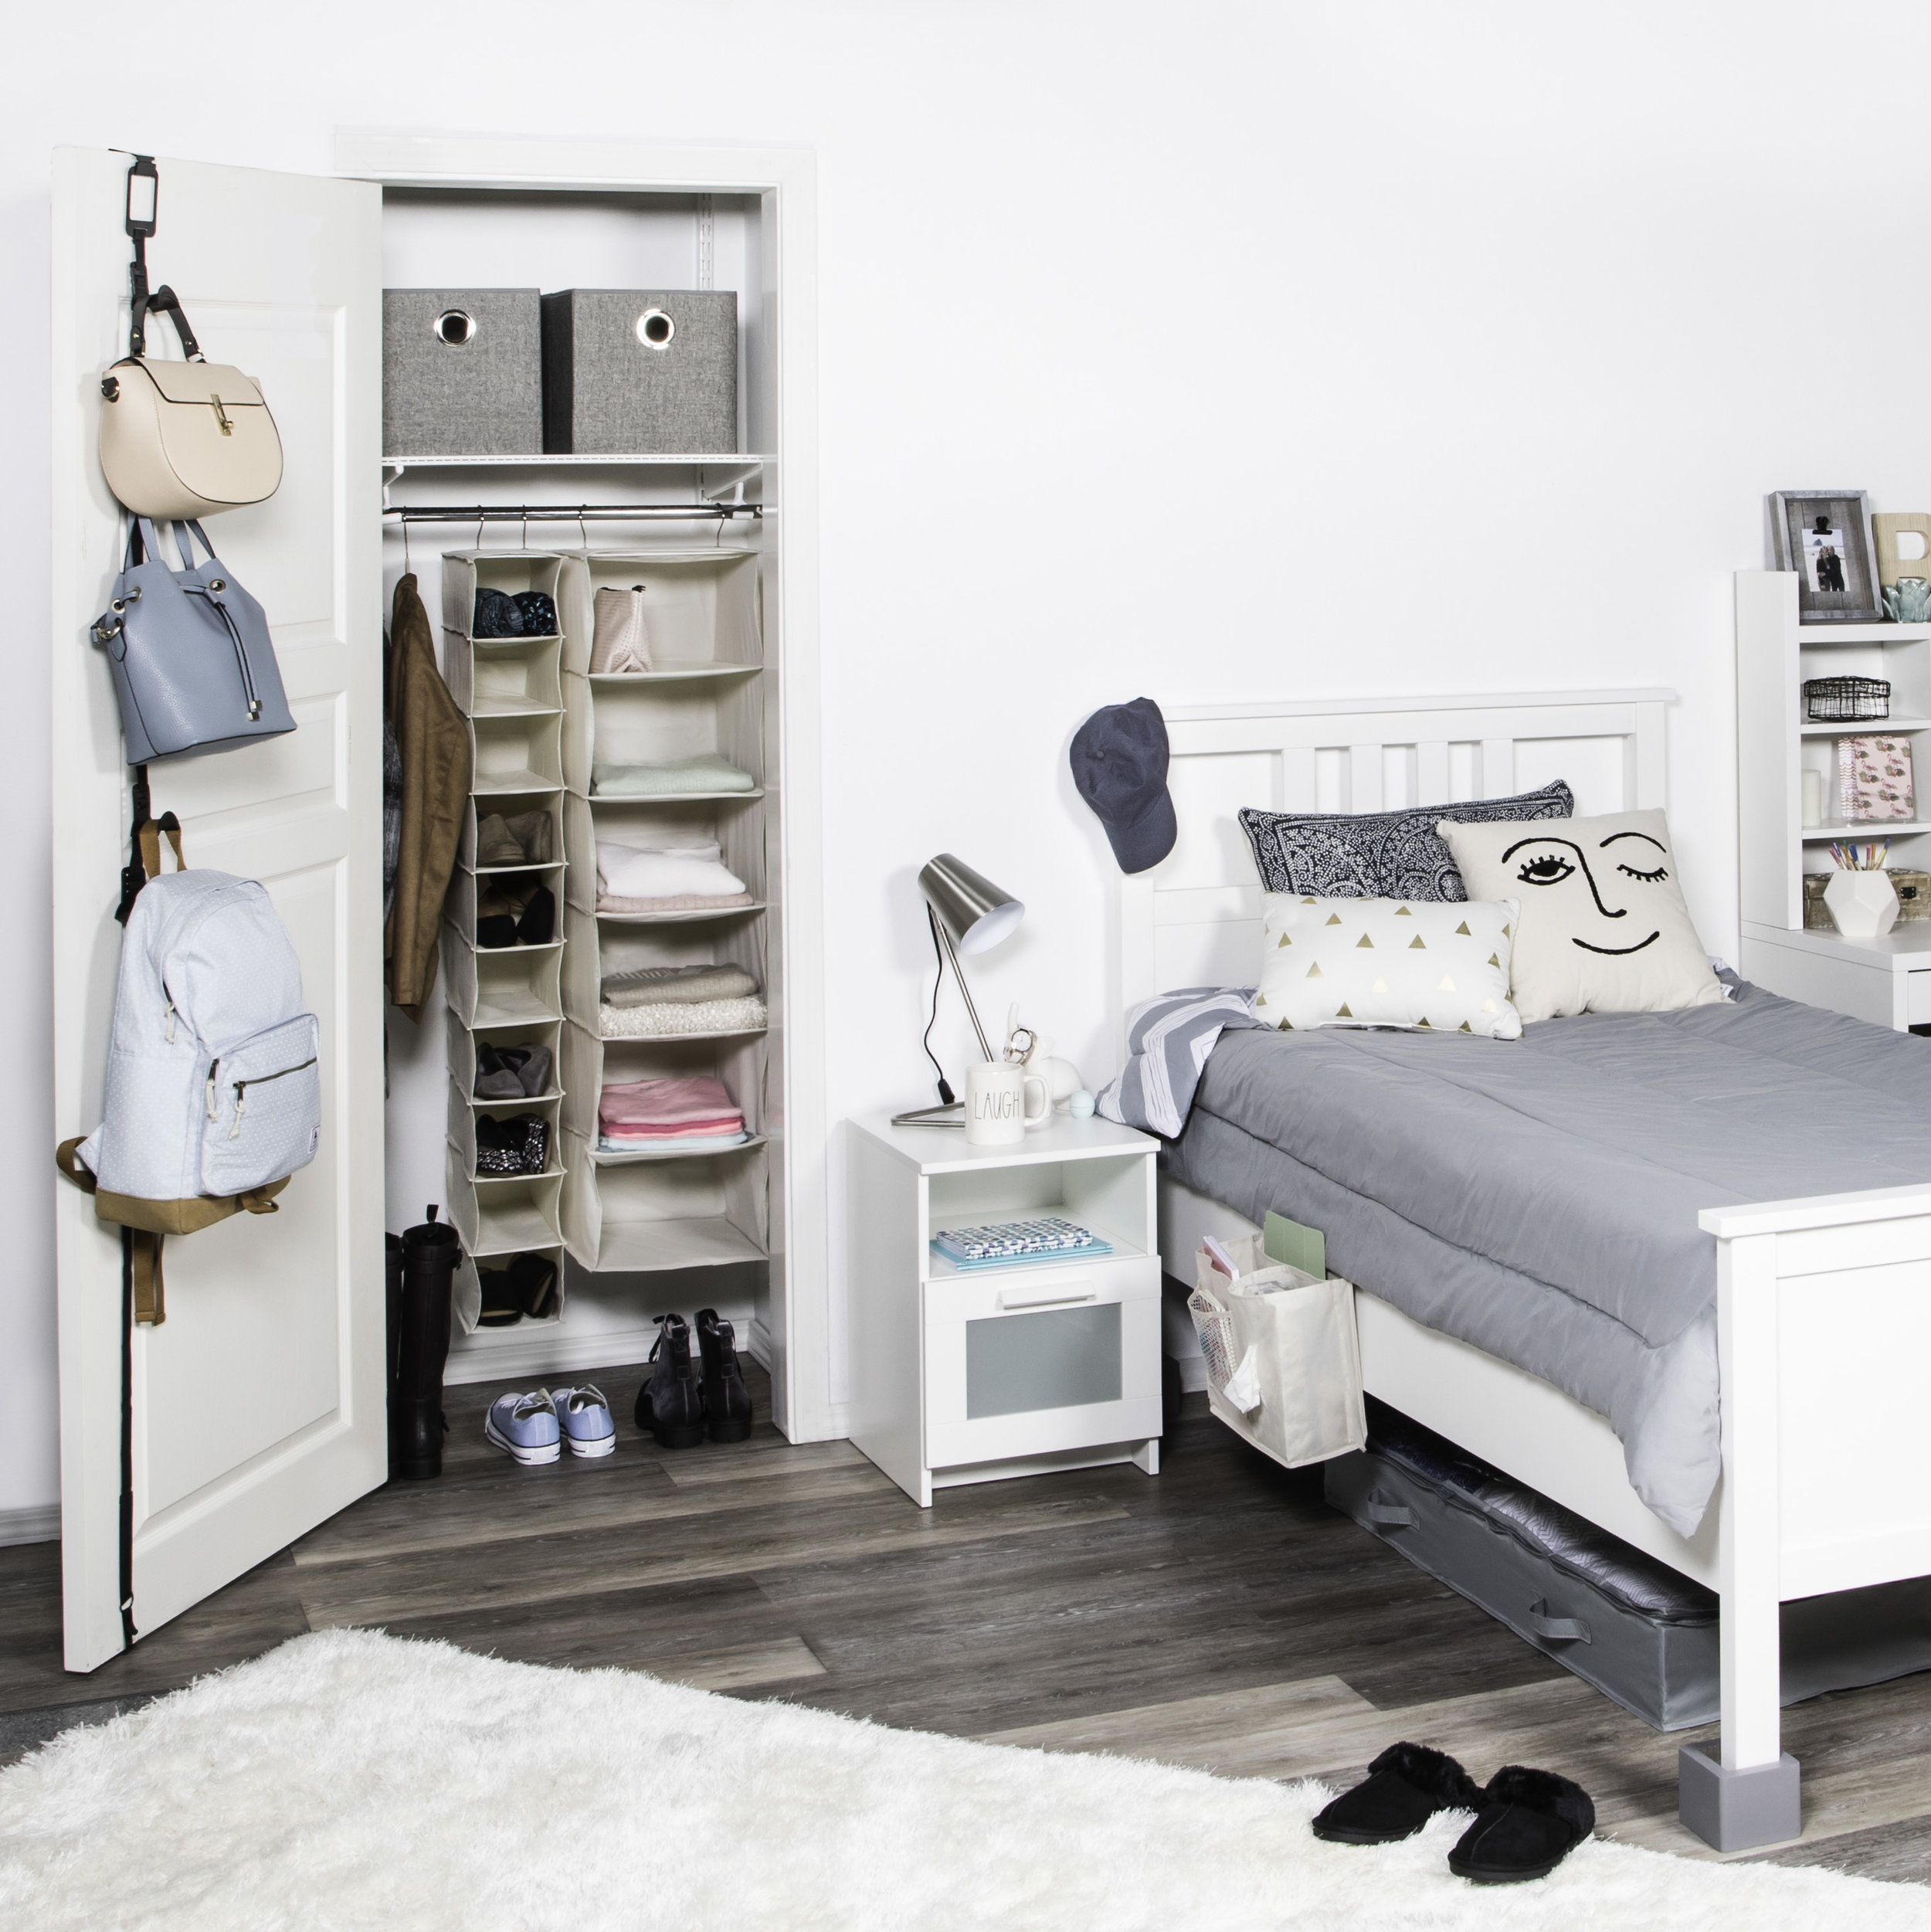 Get the most out of your space! - Although move-in day is exciting, everyone knows it can be overwhelming! Keep your cool by staying organized with Richards' line of Back to College products.All products are made with durable materials to withstand the college years and multiple moves. Add multiple cubic feet of storage space to your dorm room, and make it feel like a home.From under the bed, to over the door, to closet, bathroom and more - let Richards keep everything in its right place.Scroll down to see even more of our new Back to College products, and contact your Beacon representative to order.